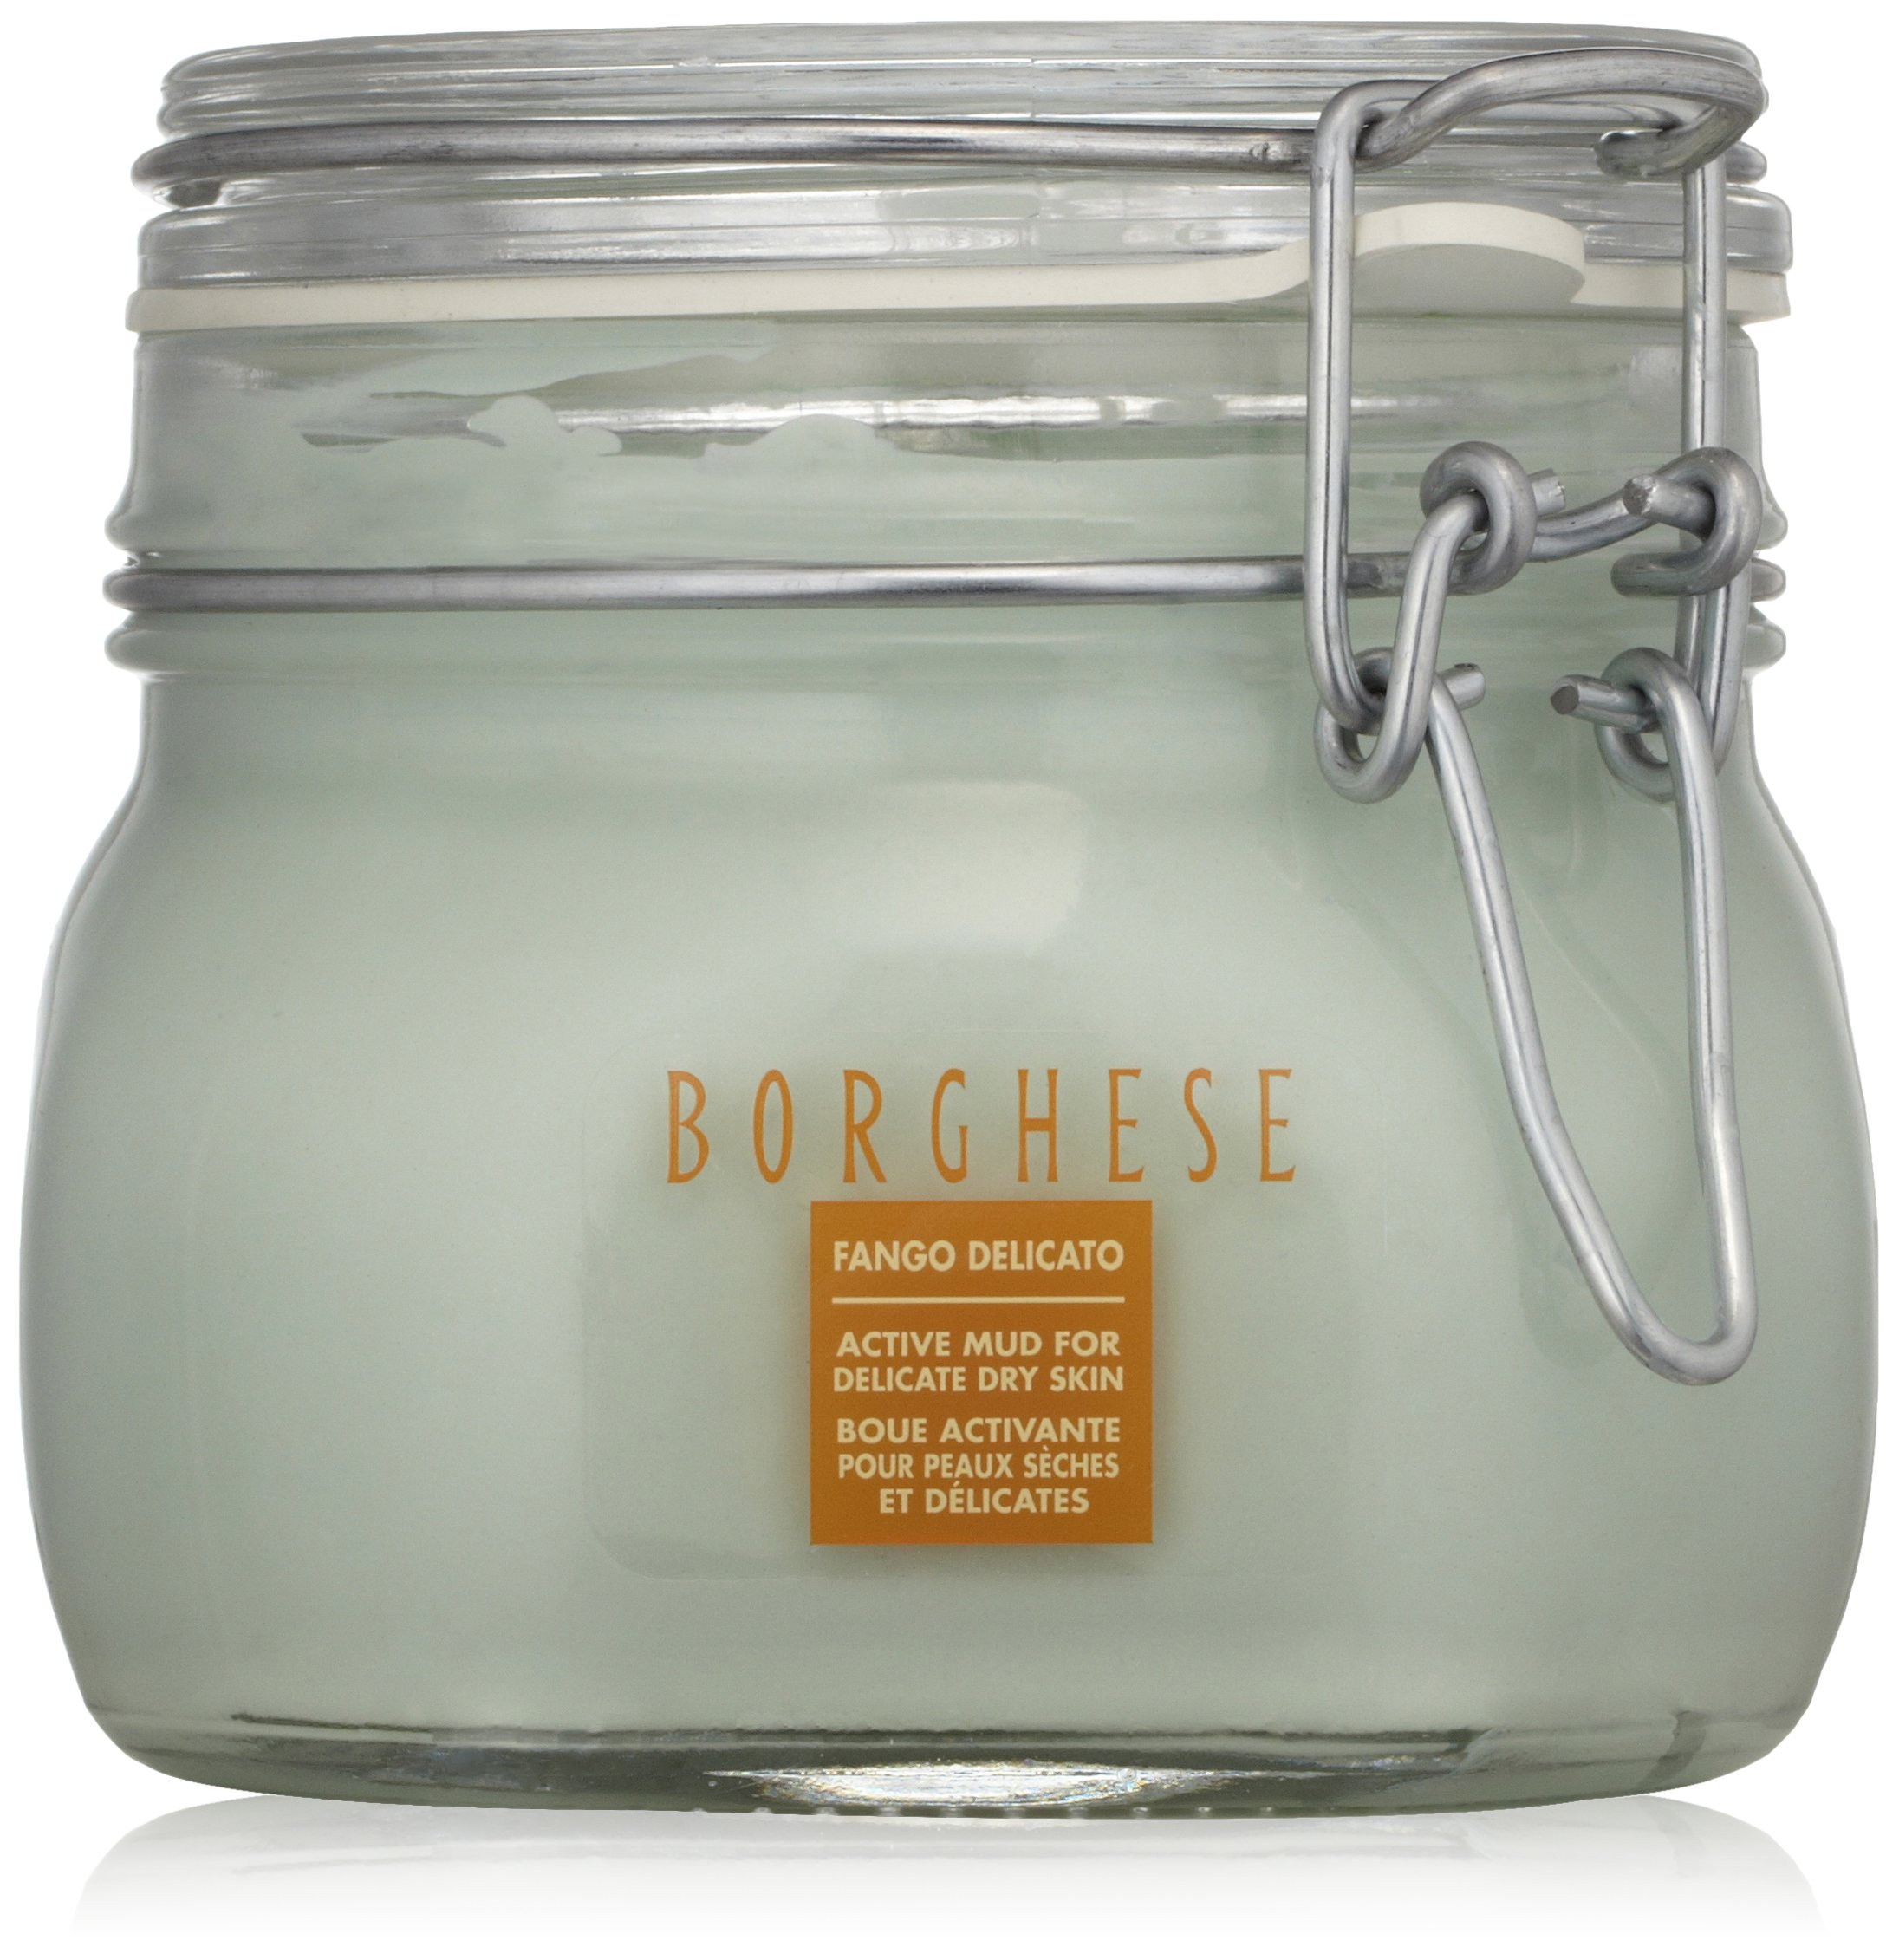 Borghese Italian Fango Delicato Mud Mask for Delicate Dry Skin Improve Skin's Texture and Boost Suppleness